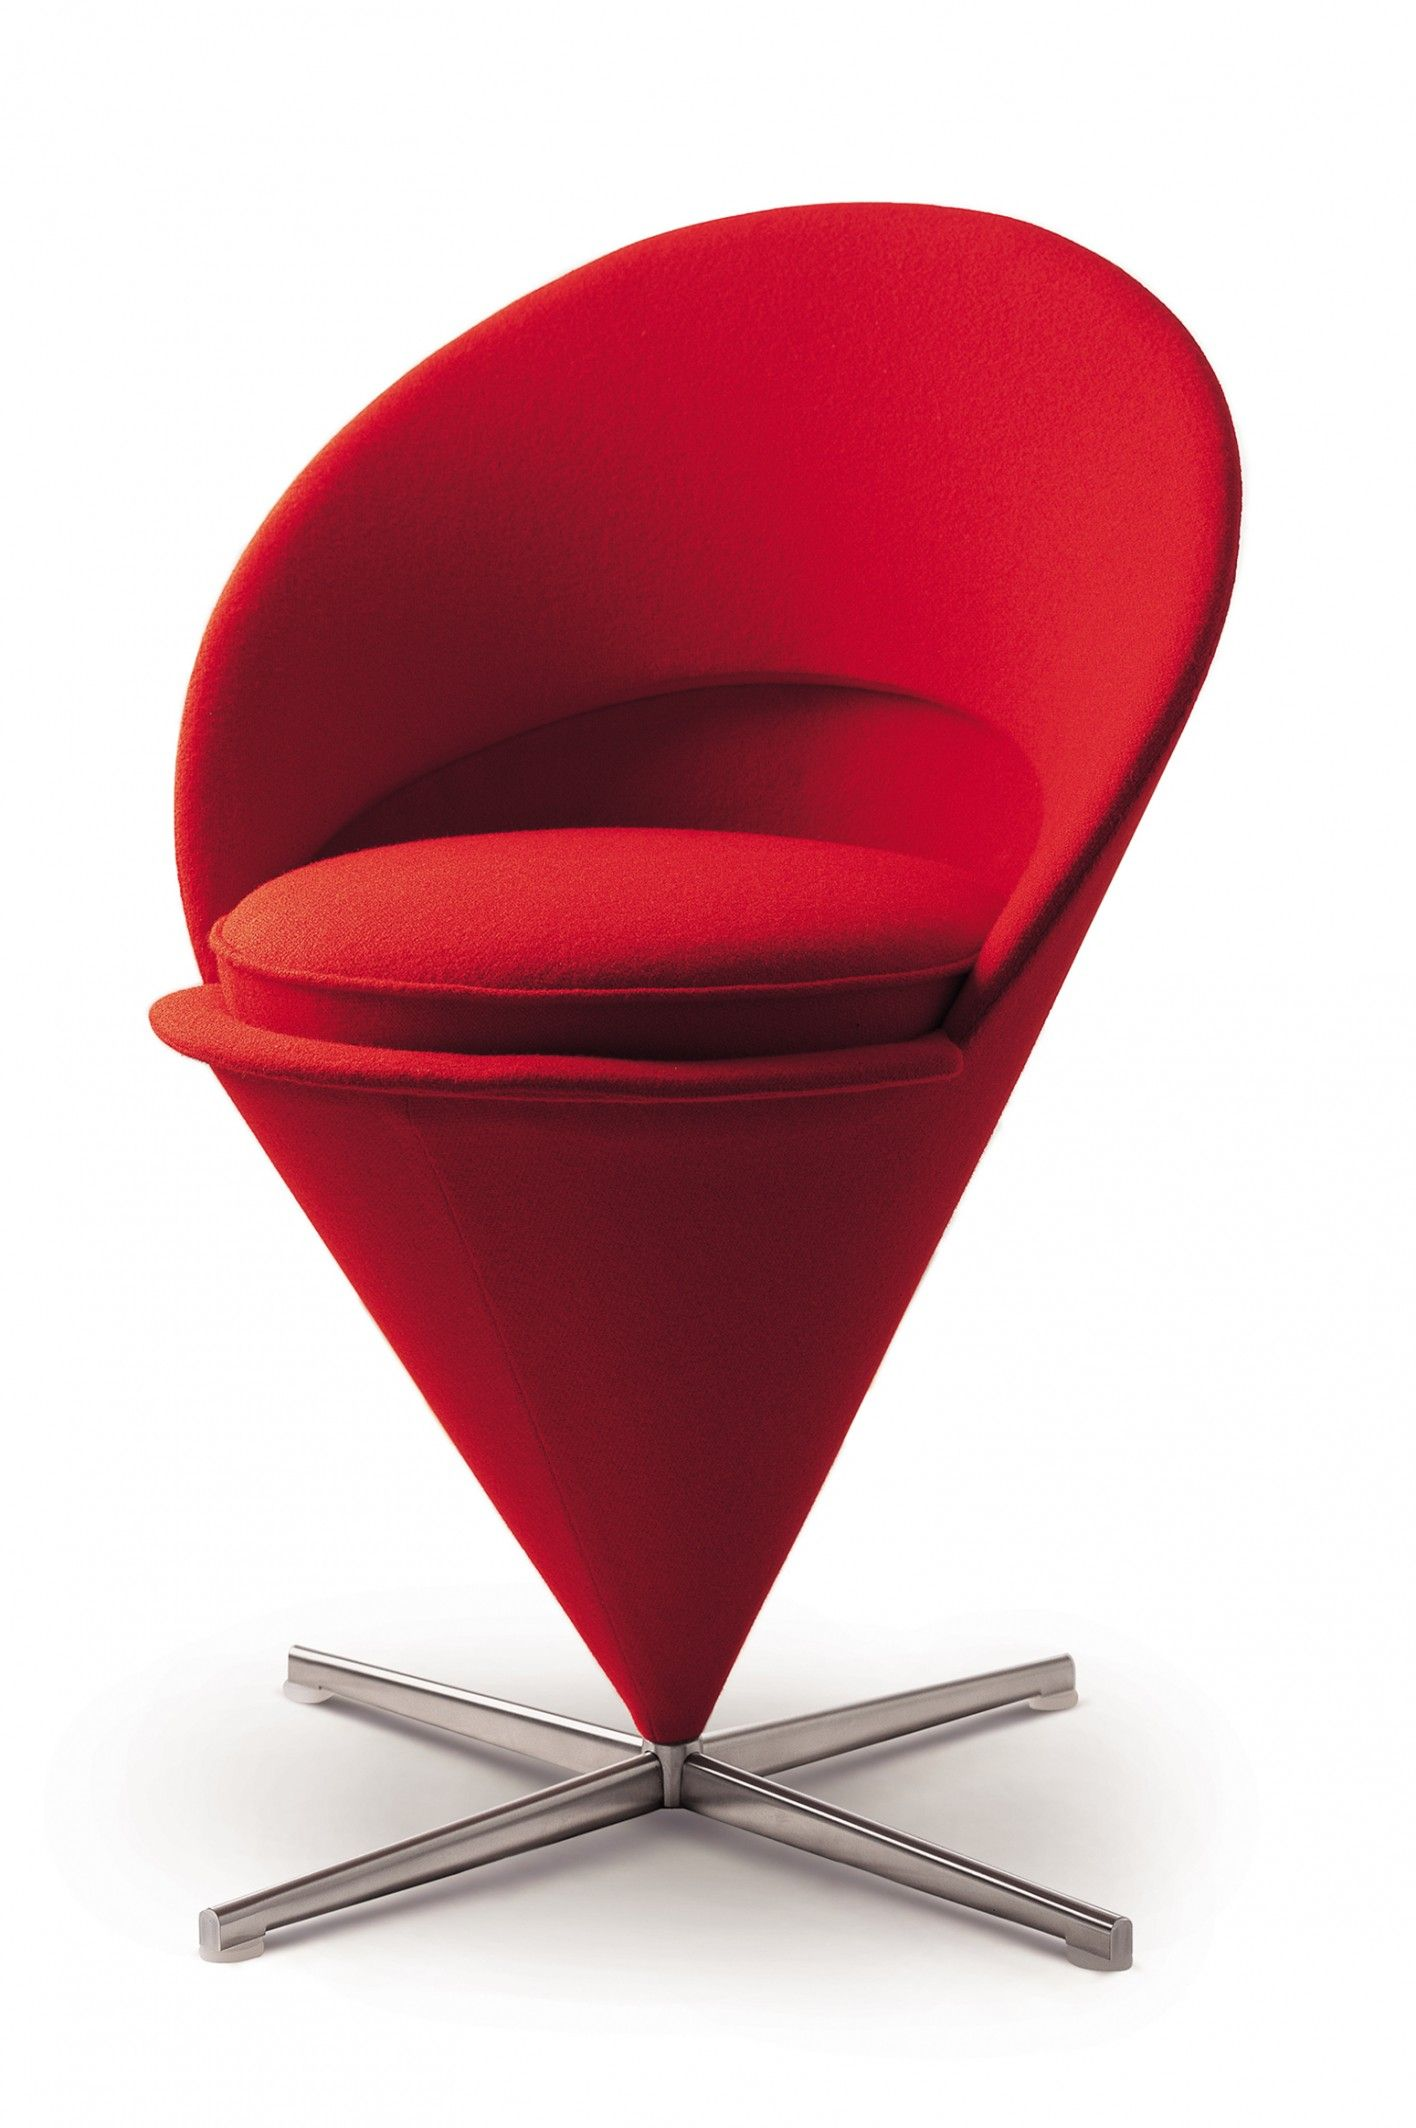 Sessel Ei Verner Panton -cone Chair 1958